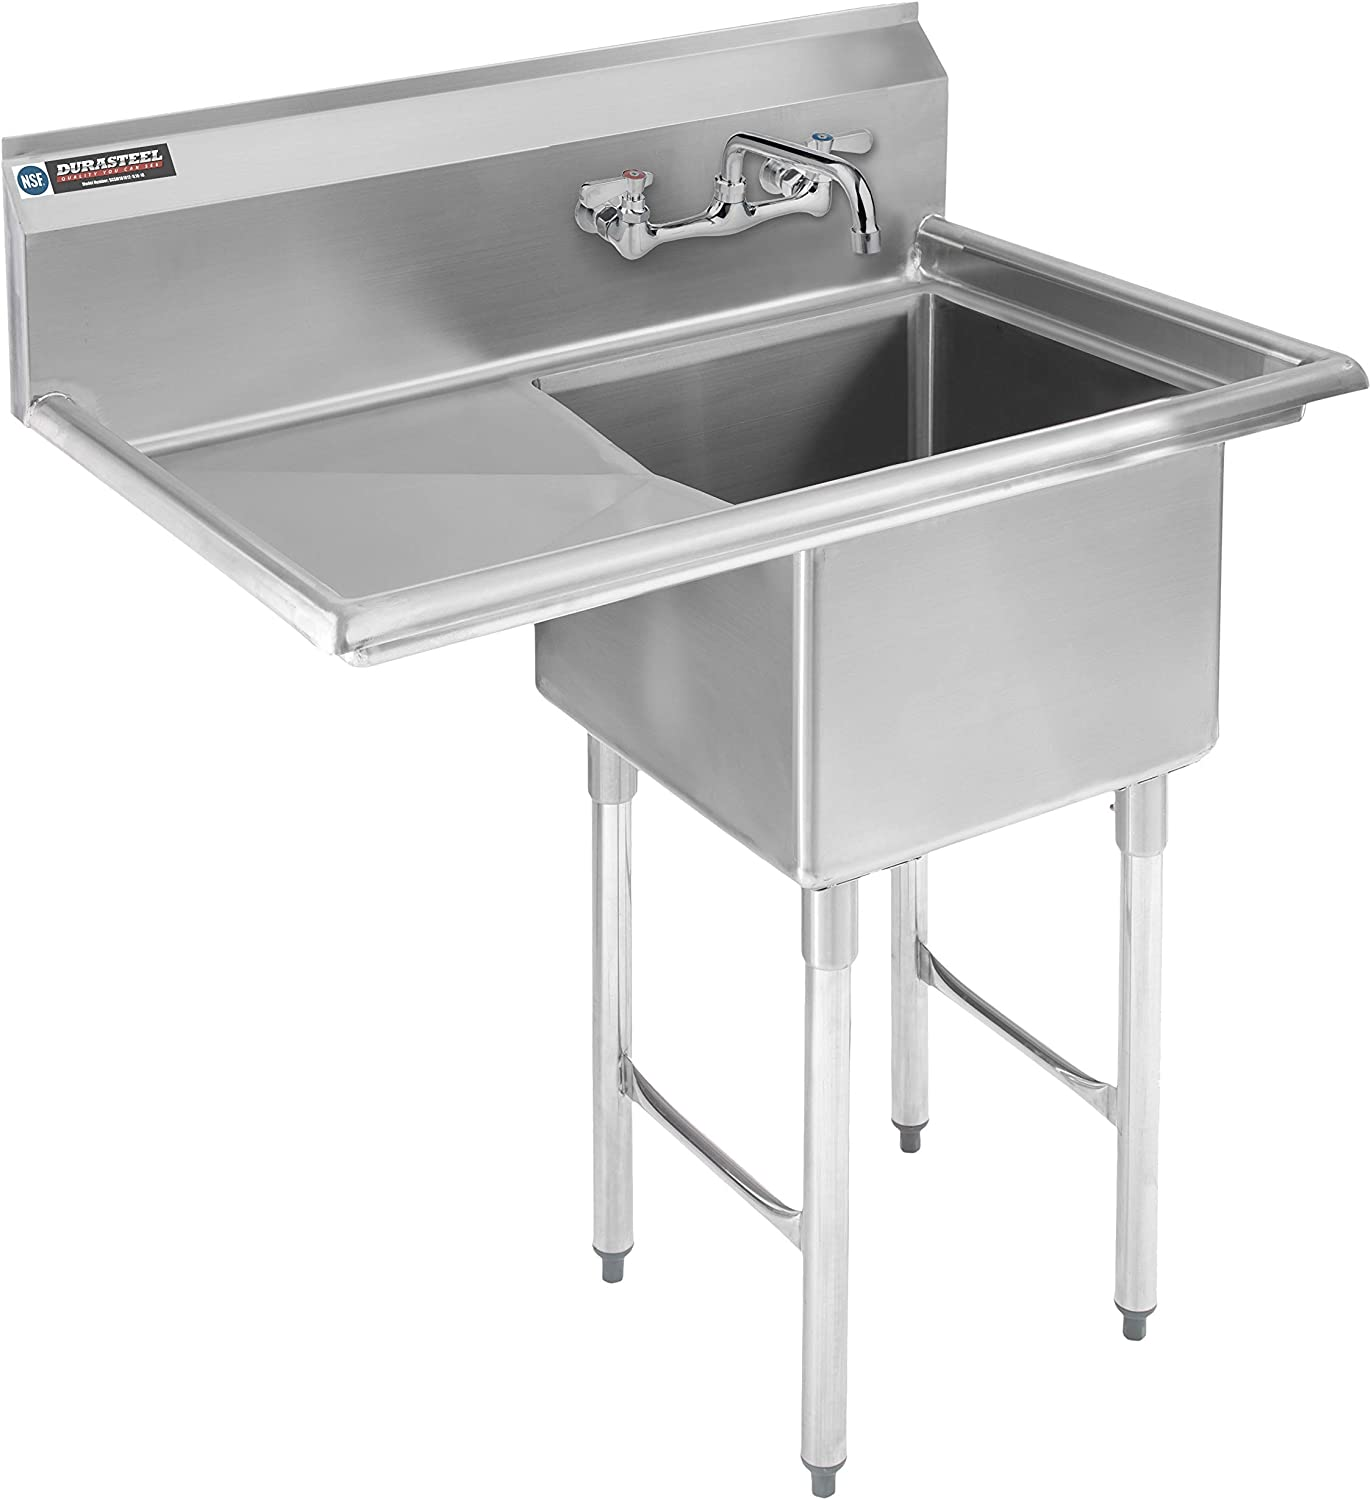 Stainless Steel Kitchen Sink with Faucet Deluxe - Compartme 1 DuraSteel Lowest price challenge